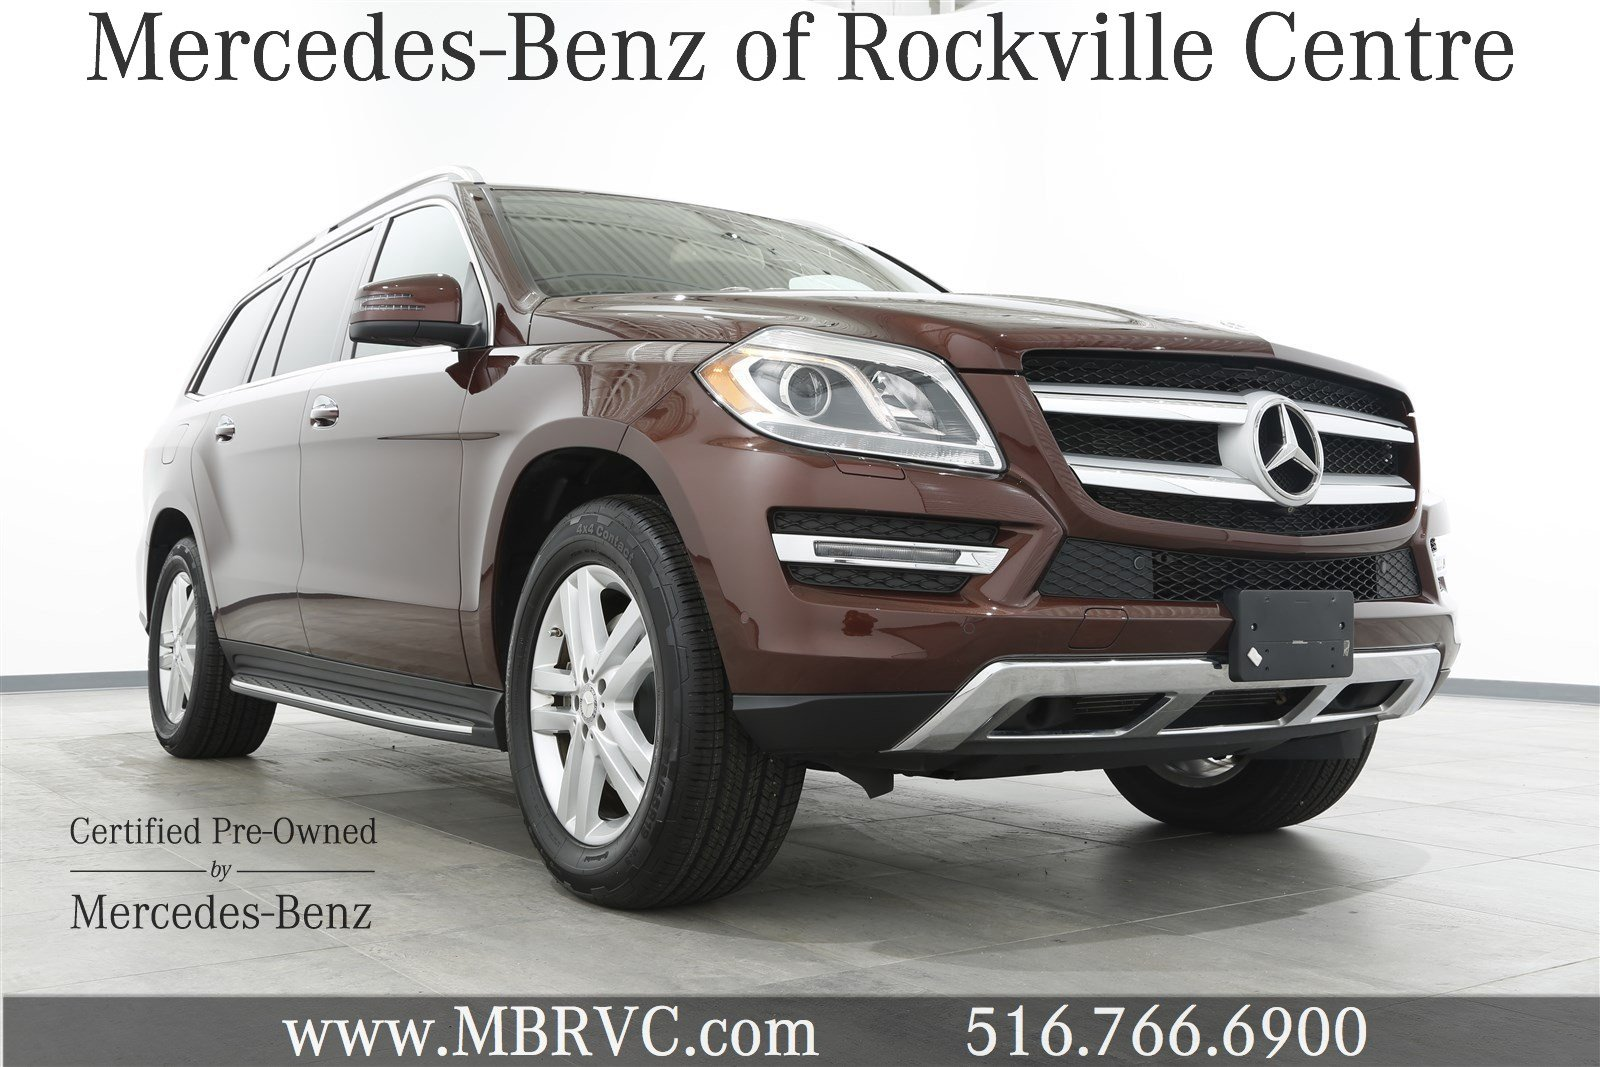 certified pre owned 2015 mercedes benz gl gl 450 suv in rockville centre 4888 mercedes benz. Black Bedroom Furniture Sets. Home Design Ideas